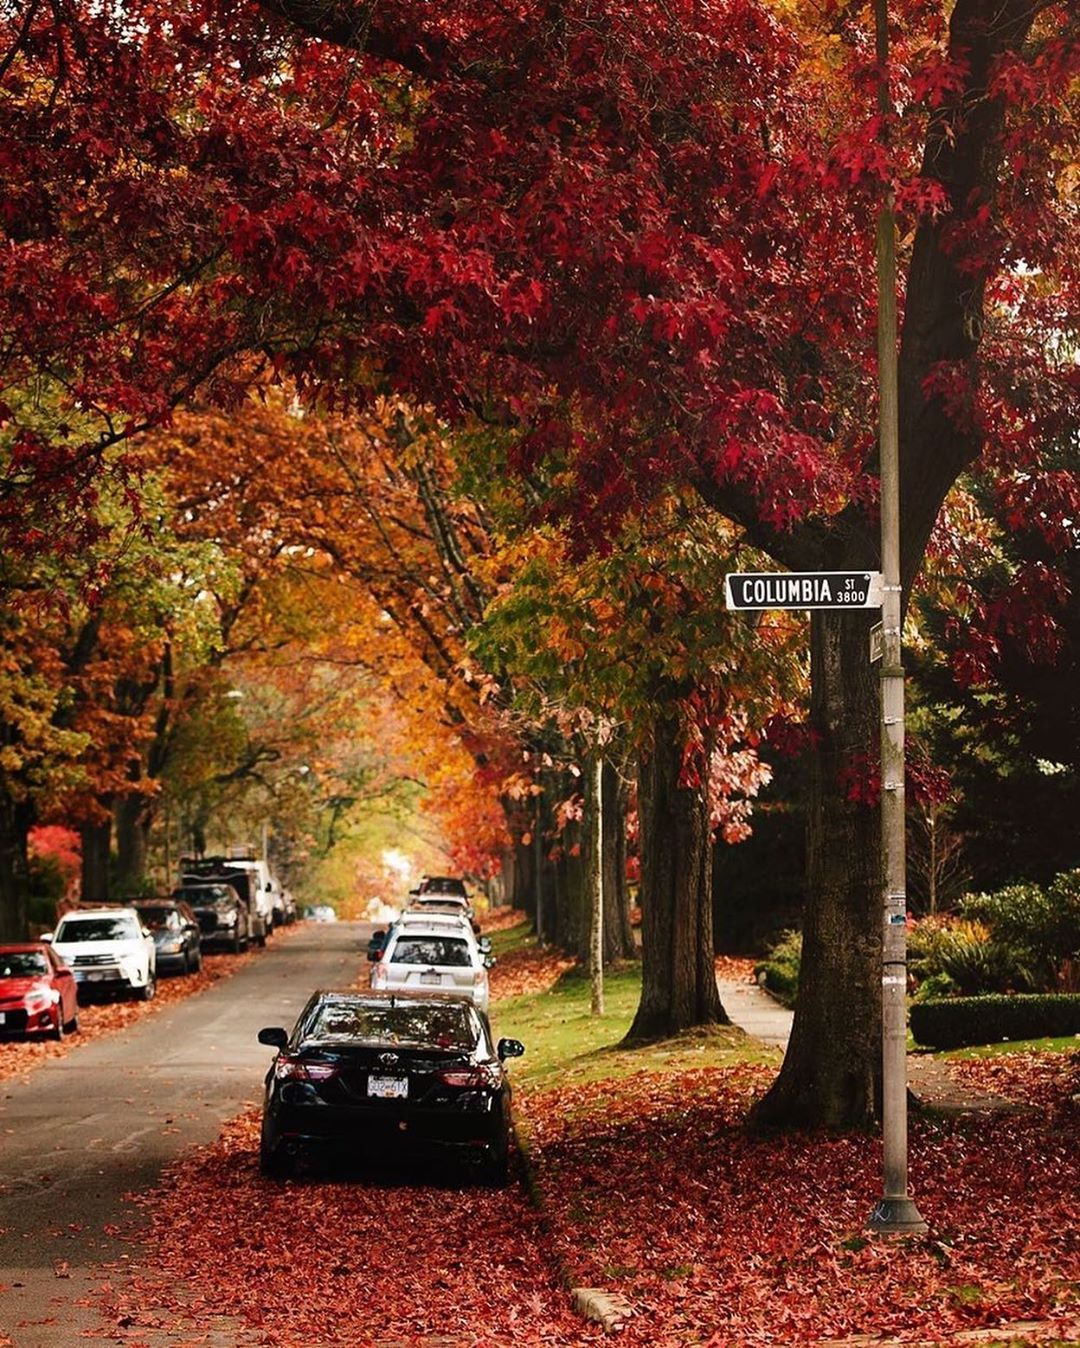 Pin By Michael Arrowsmith On Vancouver, British Columbia